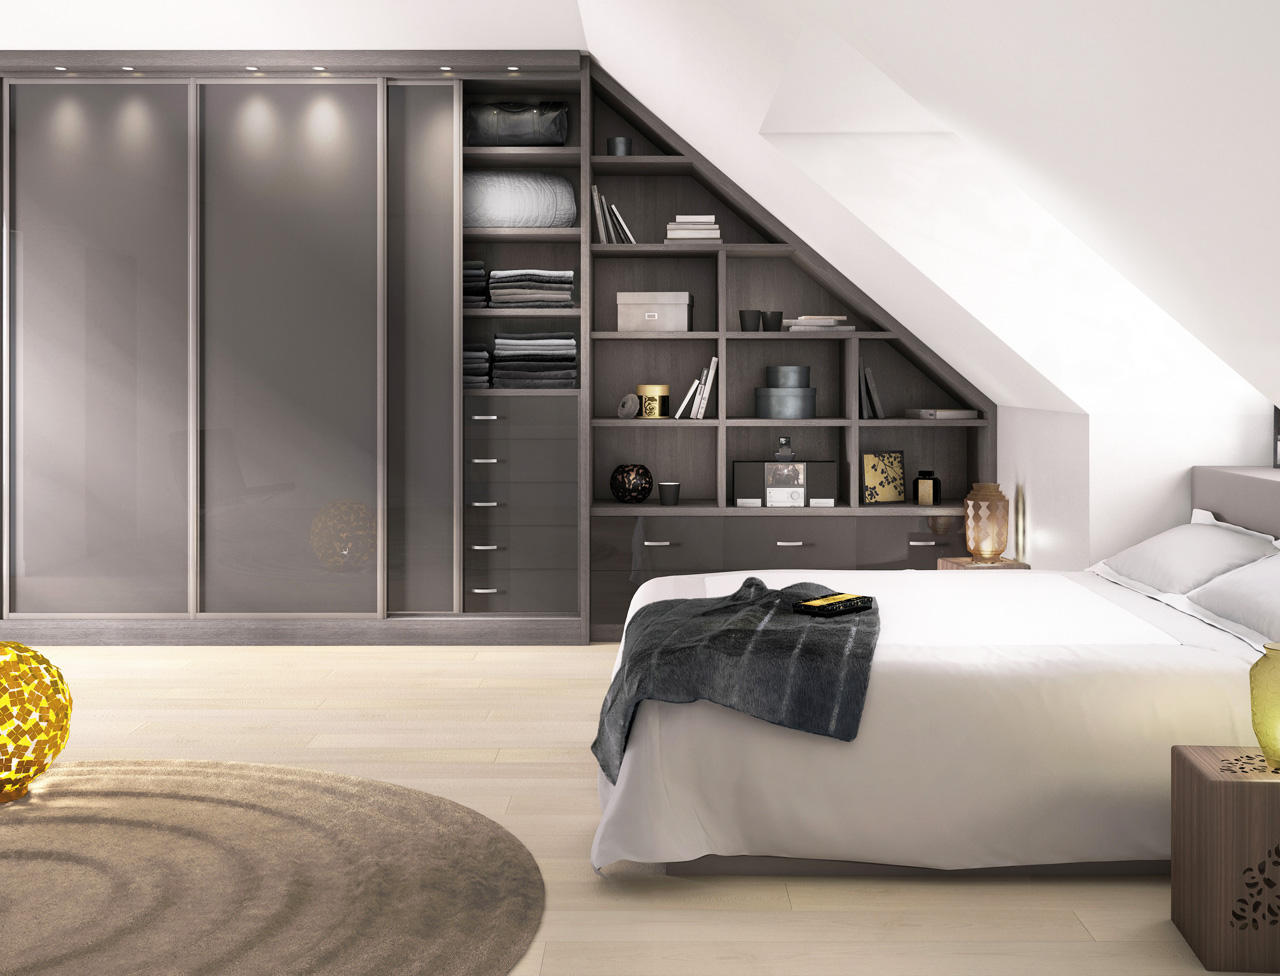 30 id es d co pour am nager et d corer vos combles. Black Bedroom Furniture Sets. Home Design Ideas